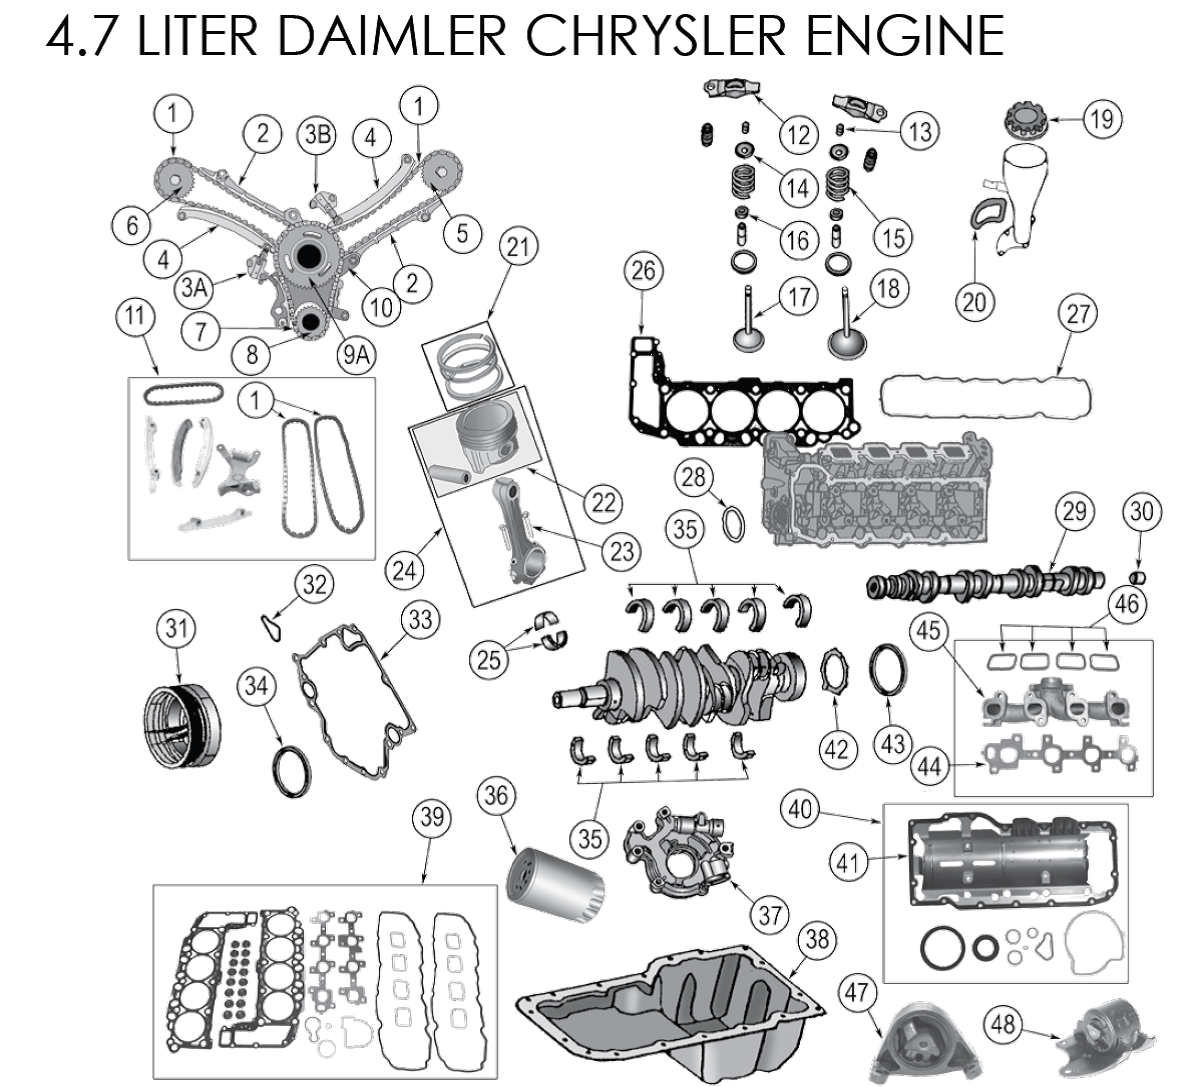 2002 Jeep Grand Cherokee Fuse Box Diagram And Guide Wiring Library Wrangler Further For 2008